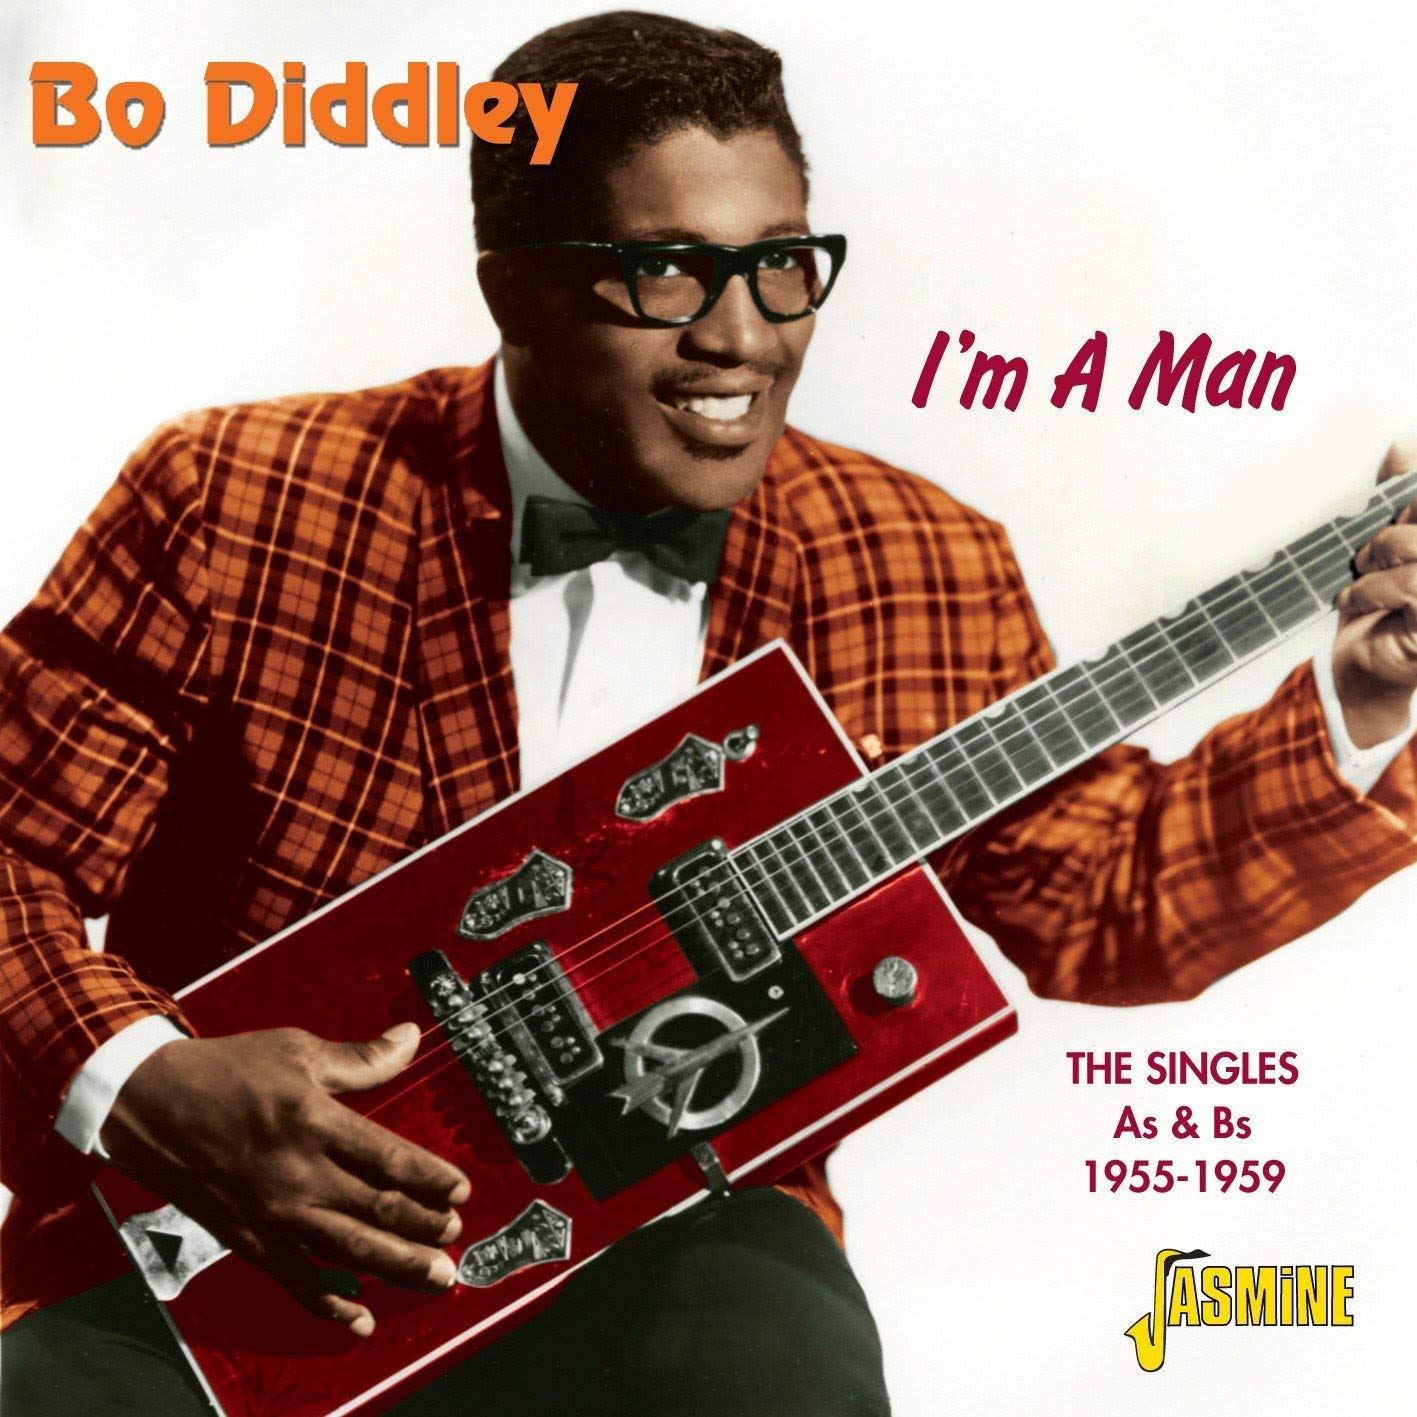 Bo Diddley - I'm A Man - The Singles As & Bs 1955-1959 - Amazon.com Music